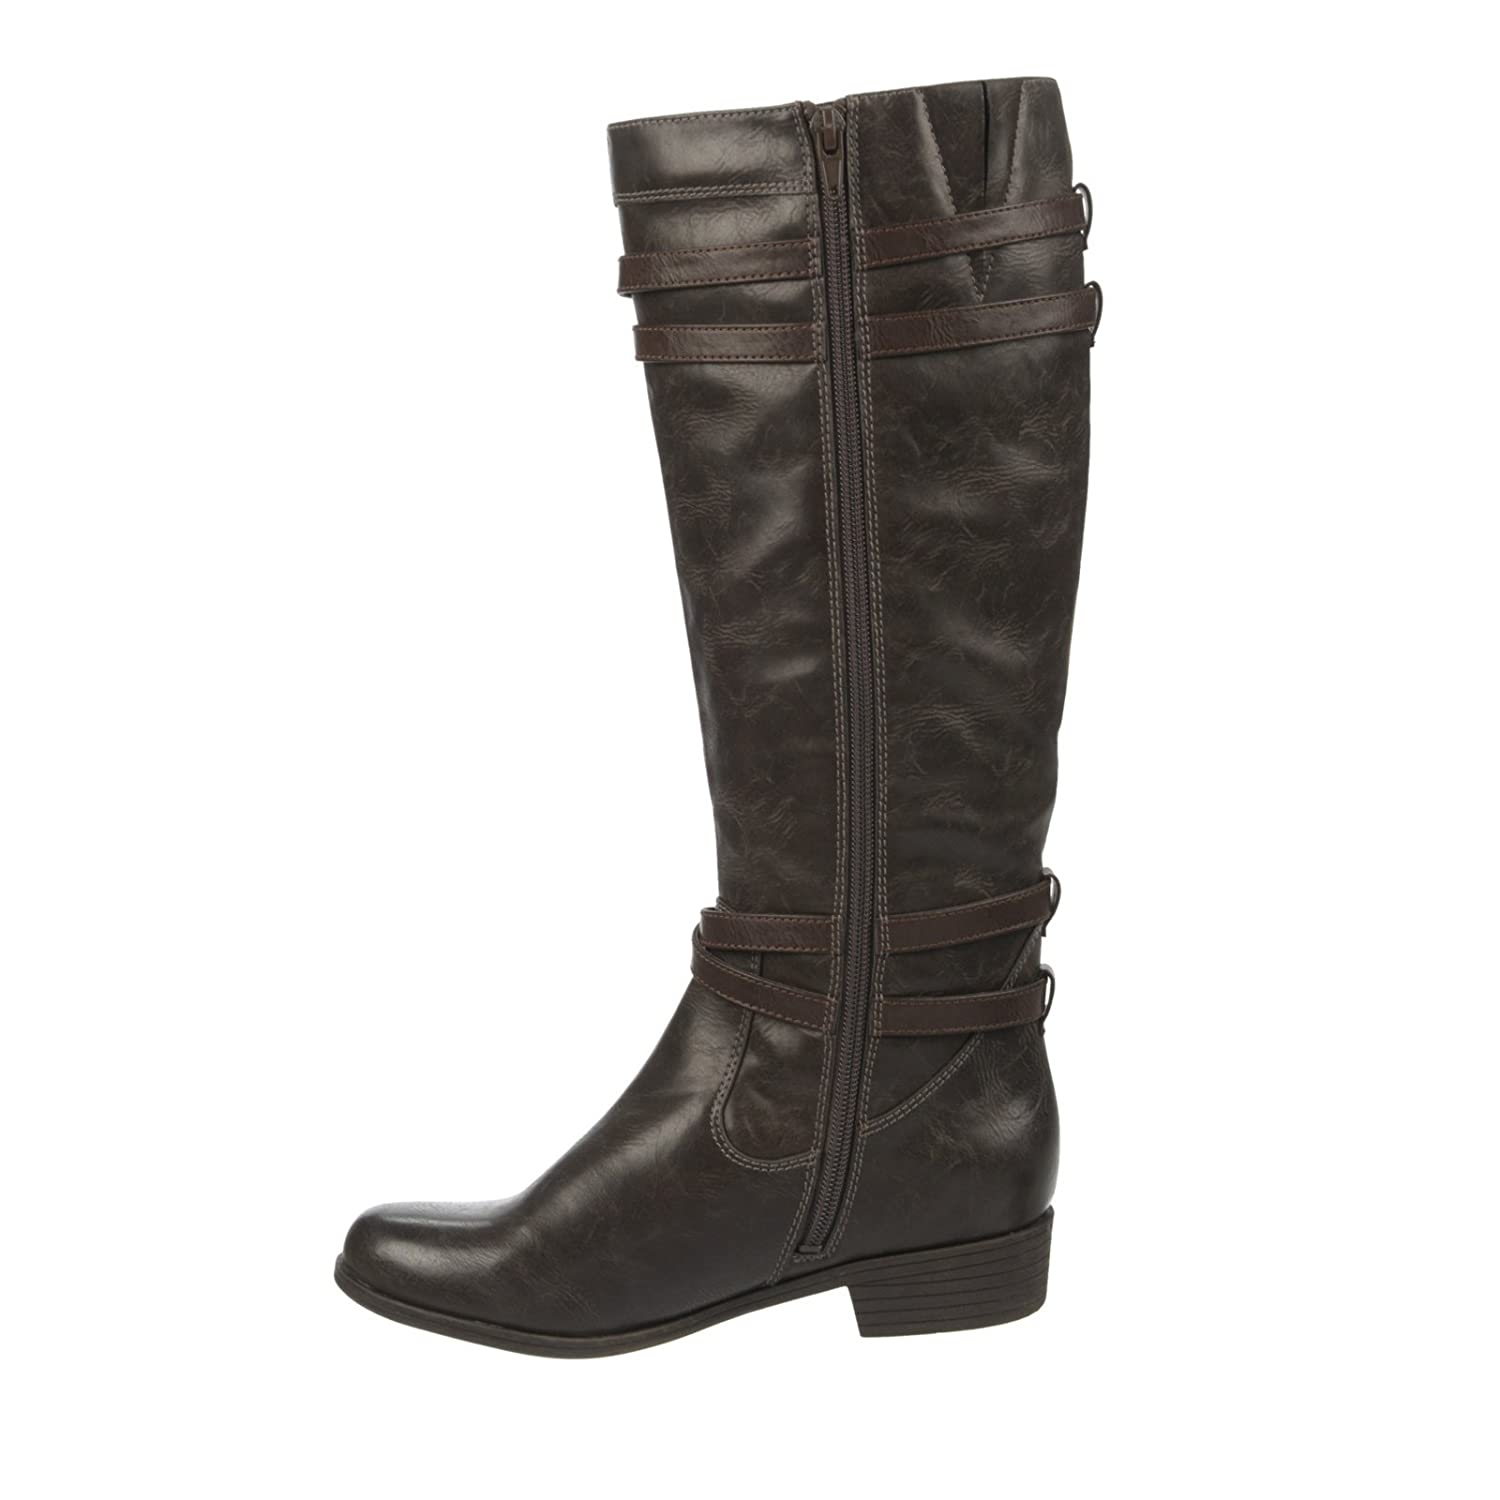 Womens Victorious Closed Toe Mid-Calf Fashion Boots